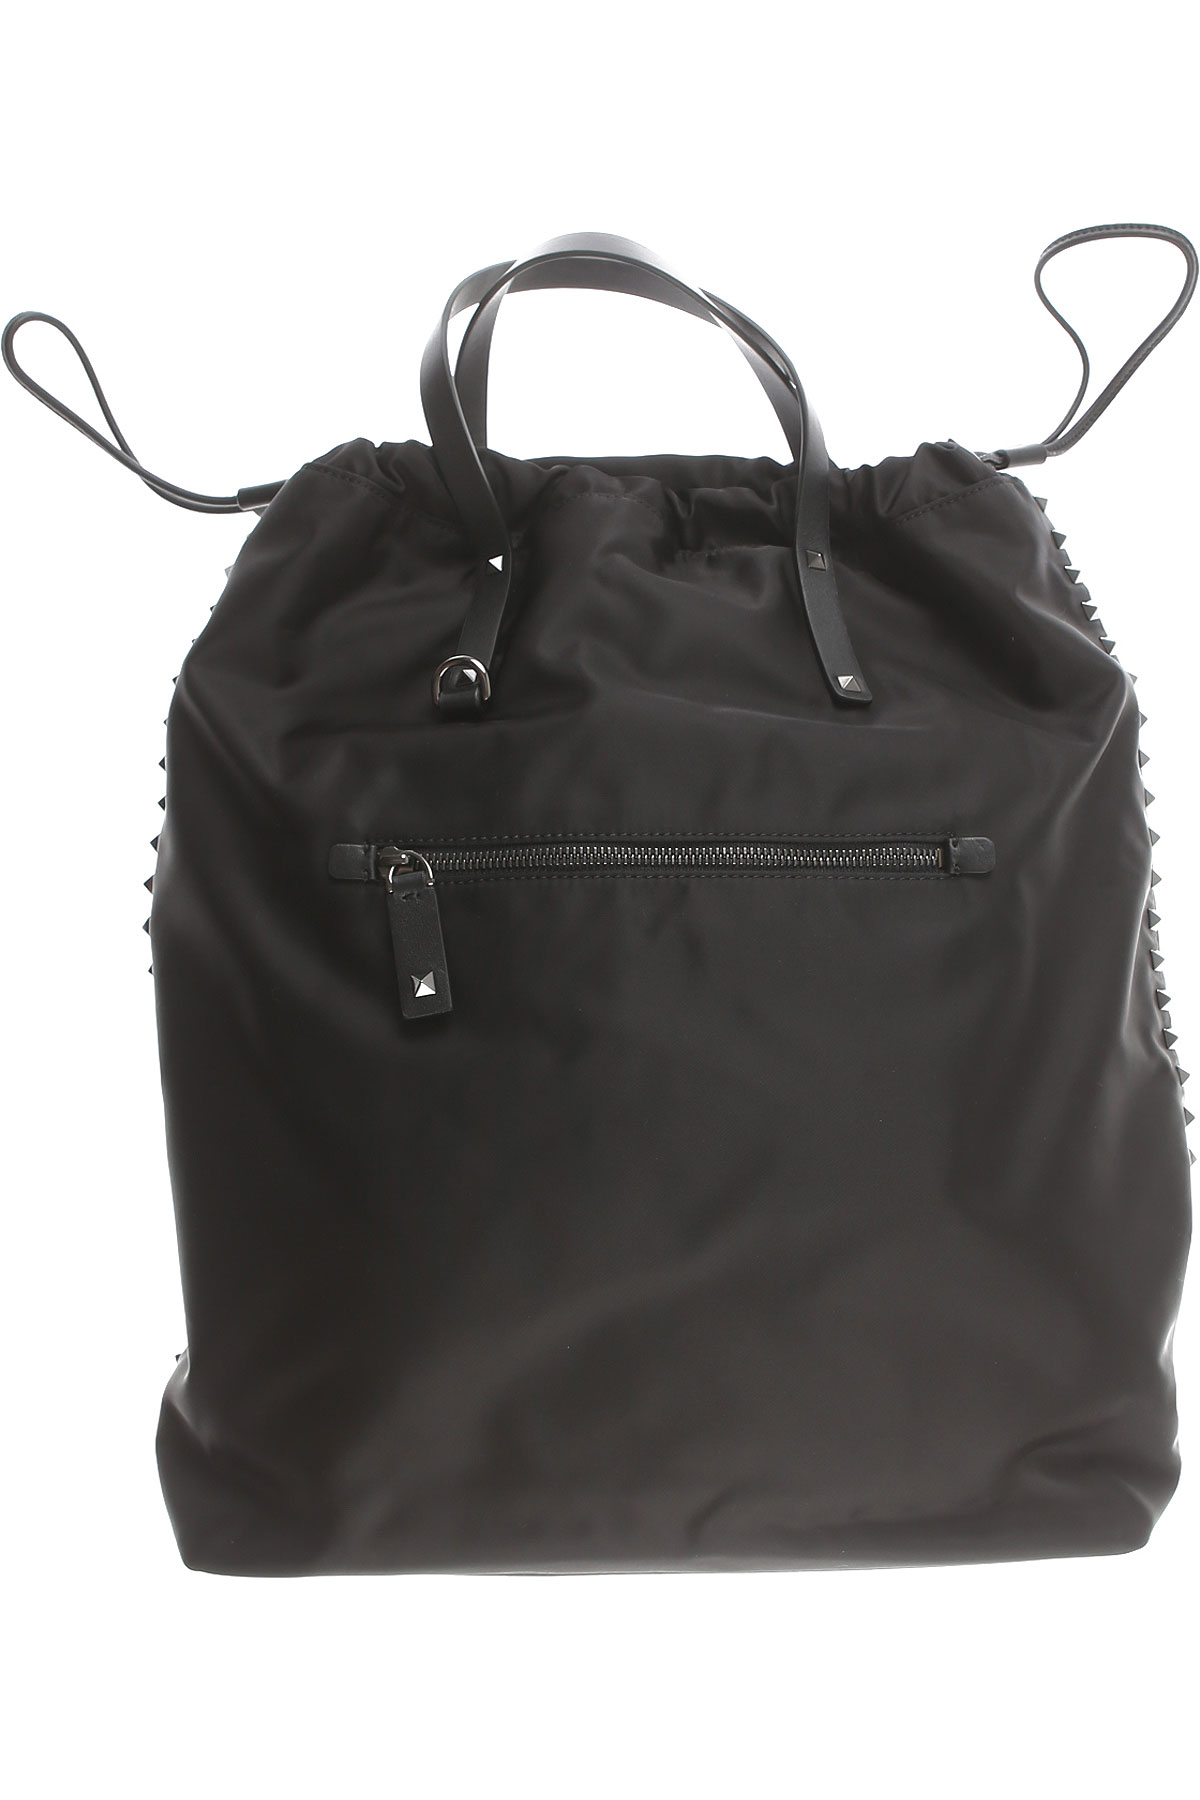 Image of Valentino Totes, Black, 2017